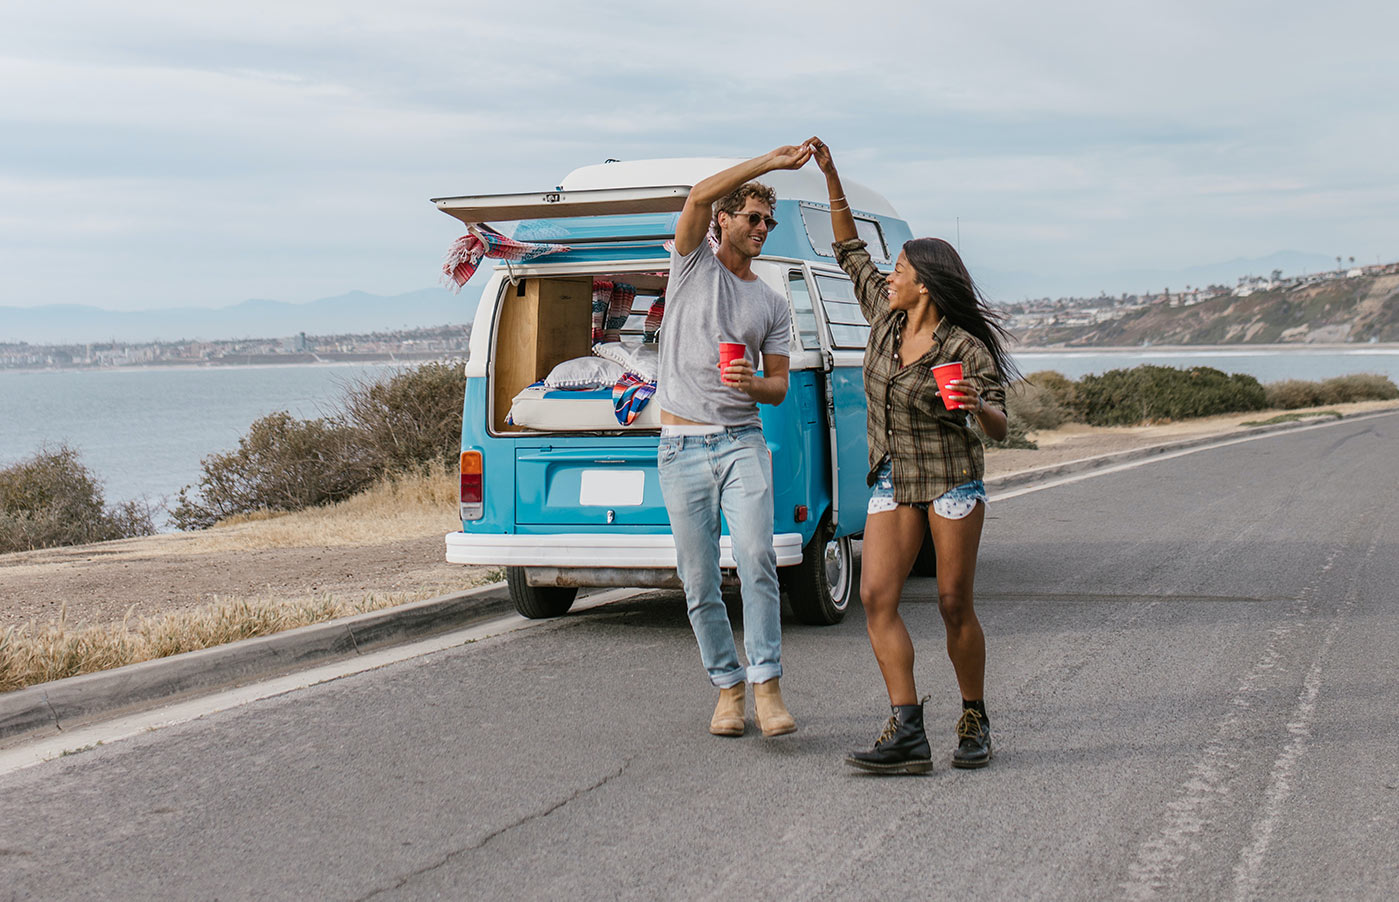 Man and woman taking a break from a road trip.